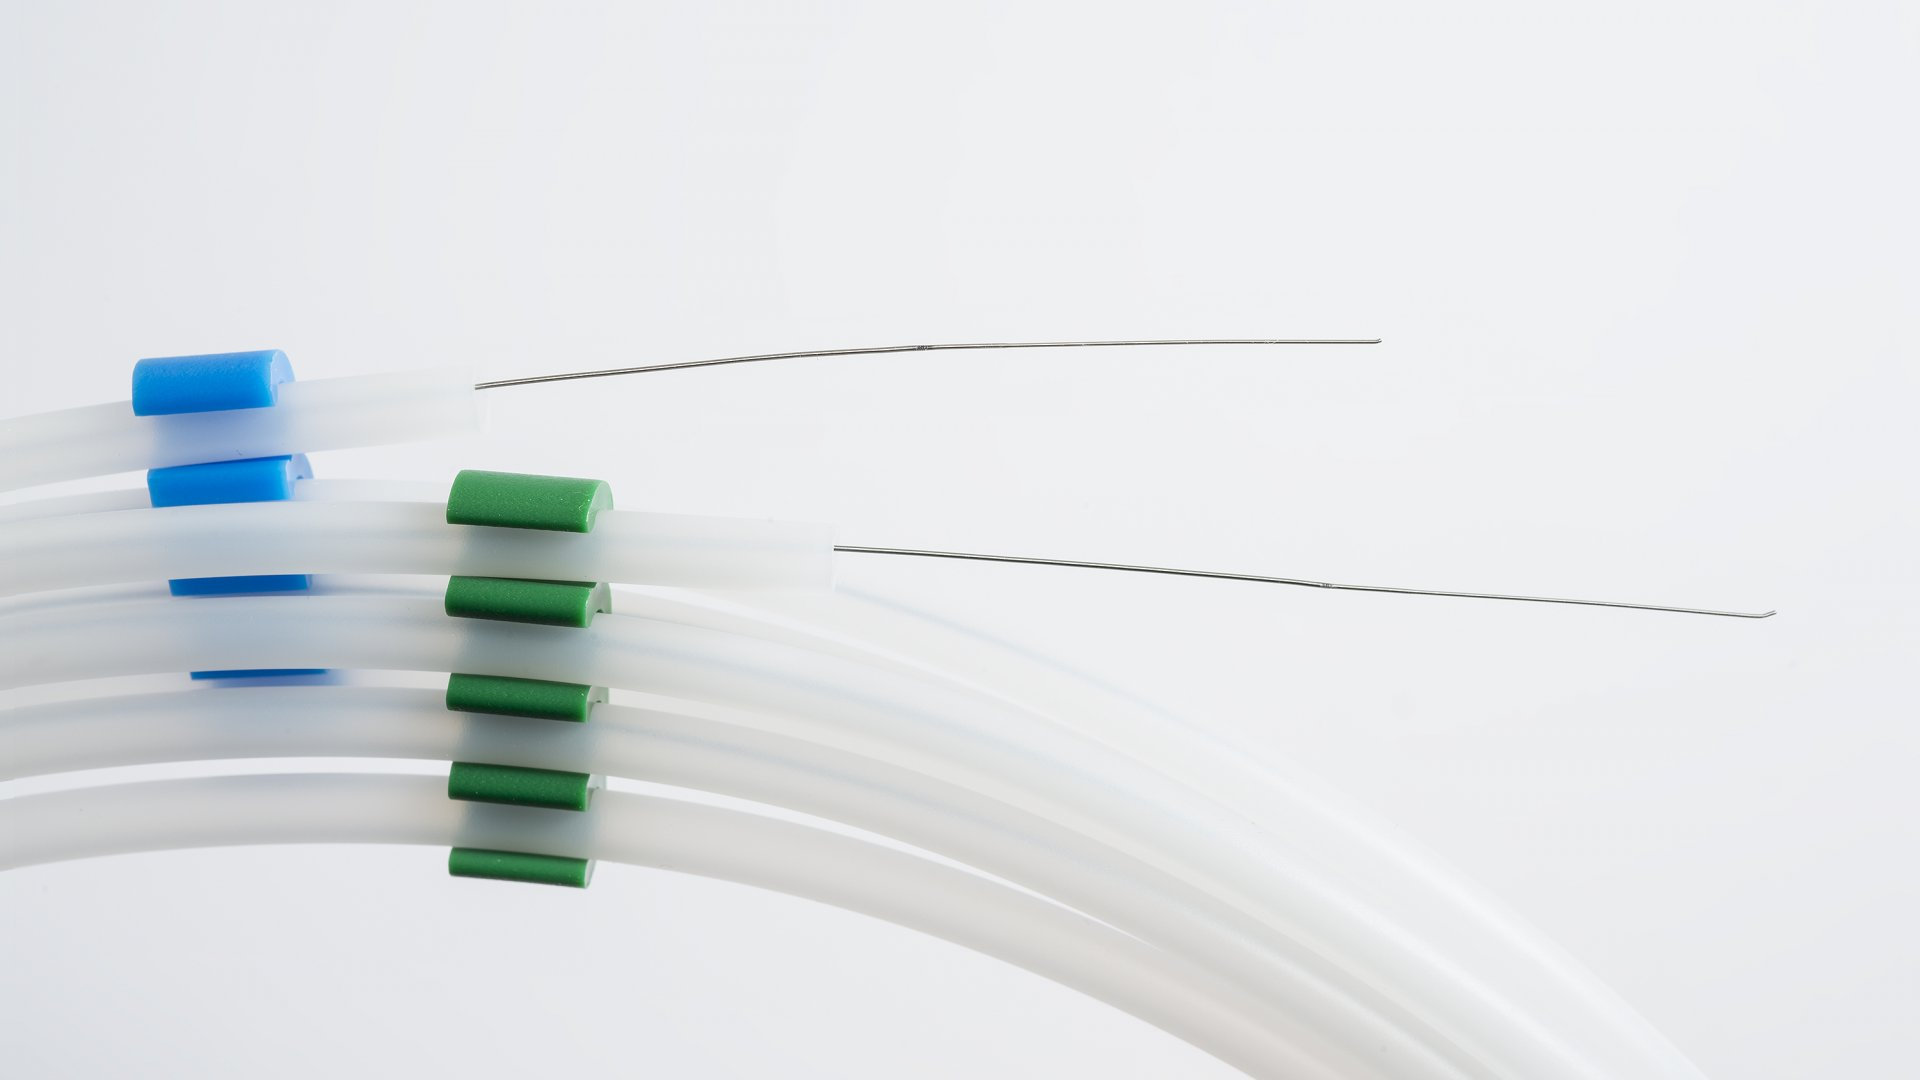 In the photo are Whitlow Wires, cardiac guide wires designed by Dr. Patrick Whitlow of Cleveland Clinic. They are now the flagship product of Tatara Vascular, a company Cleveland Clinic has launched and invested in heavily.